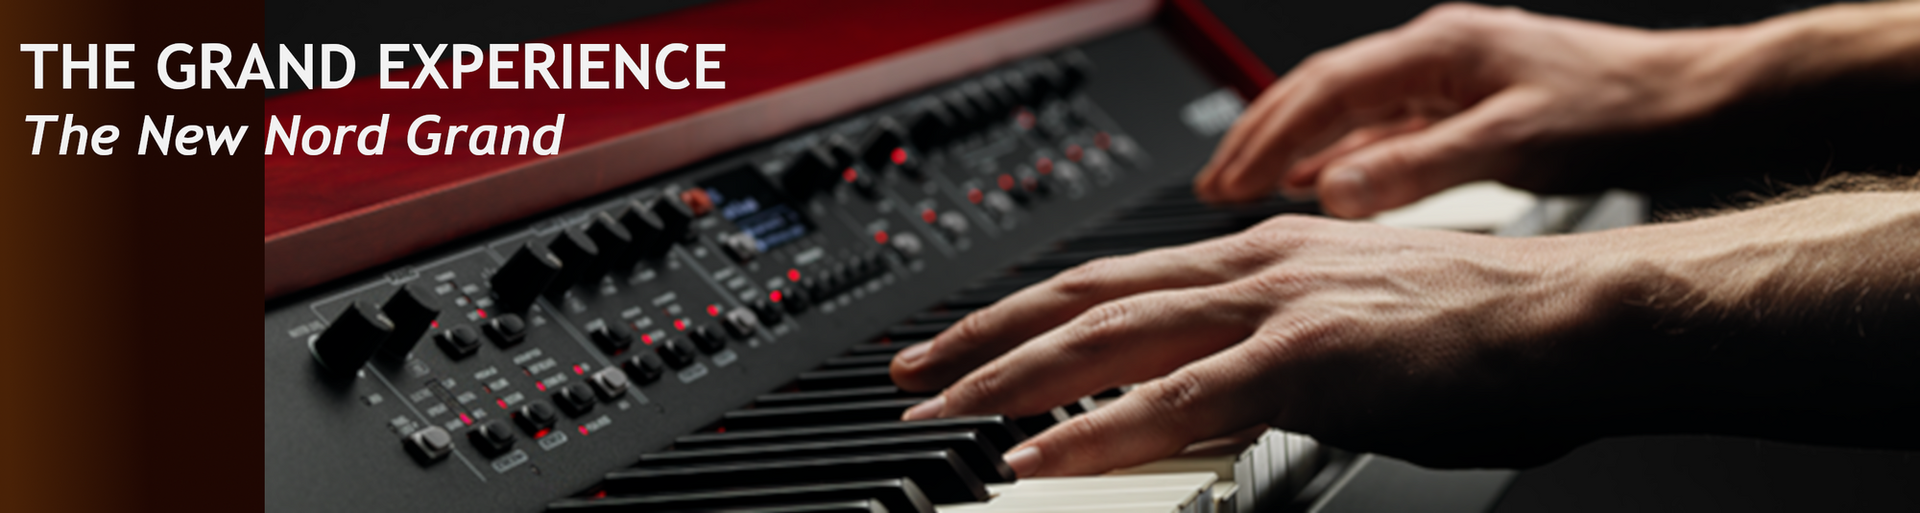 New Nord Grand